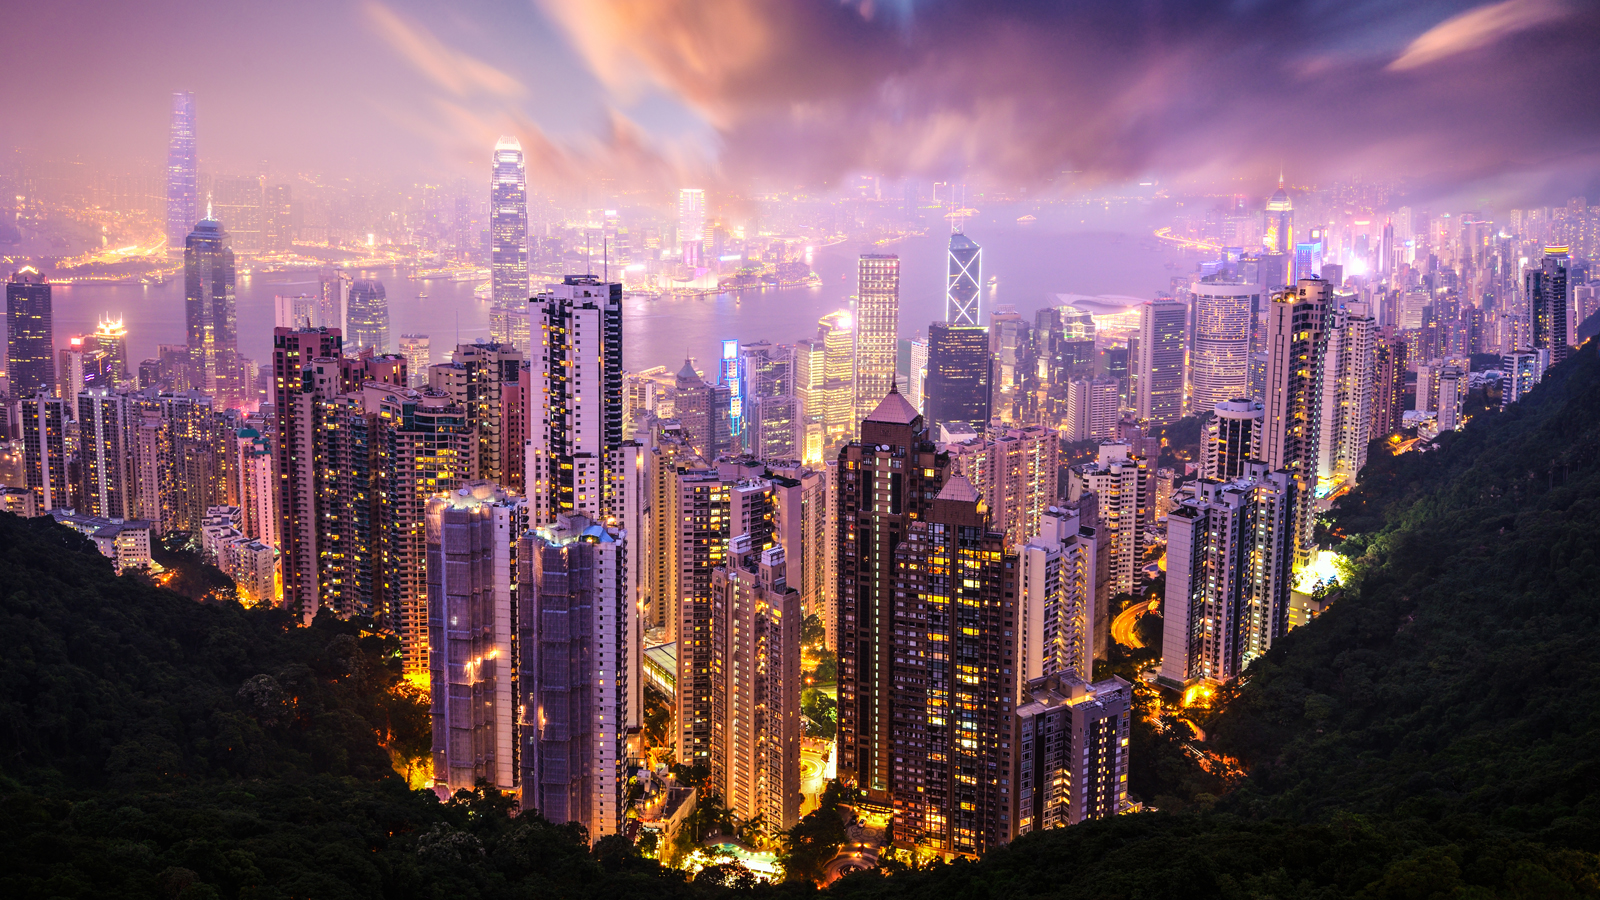 Hong Kong, China skyline from Victoria Peak.